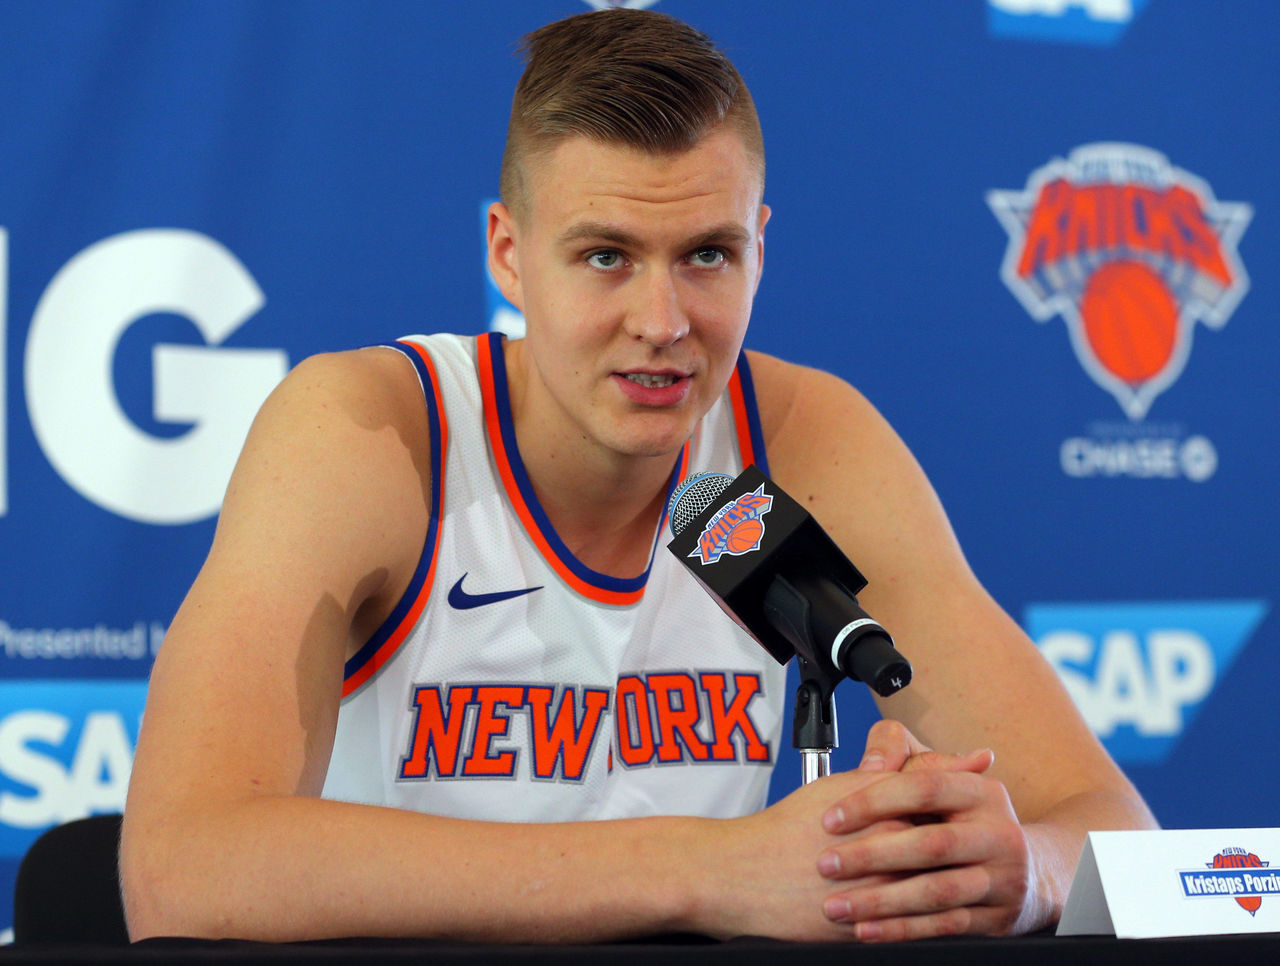 Knicks broadcasters caught critiquing Porzingis on hot mic